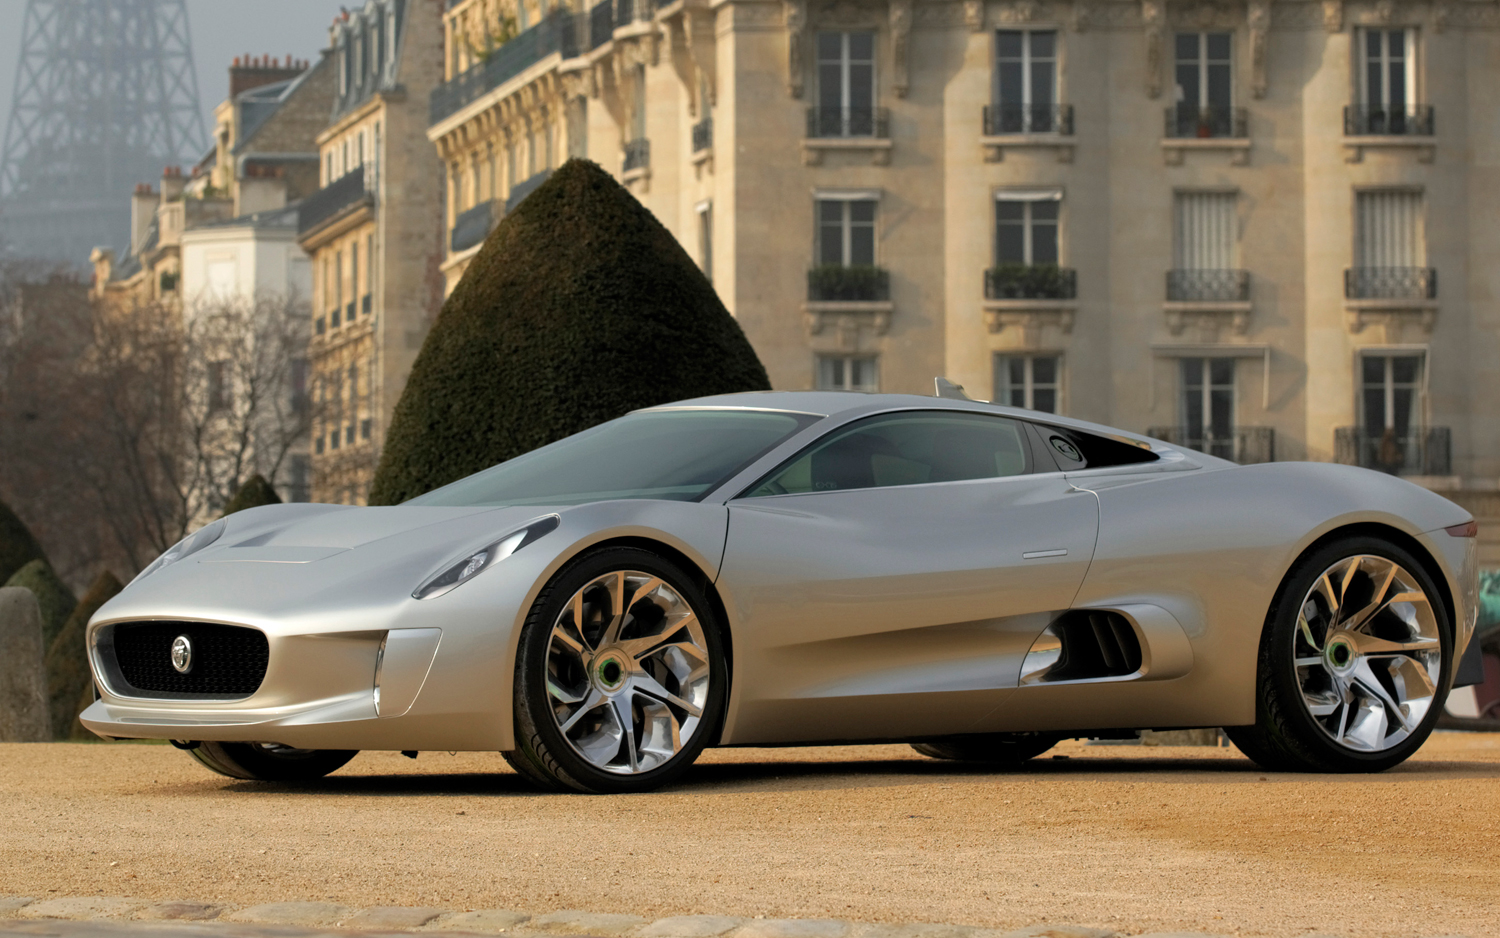 medium resolution of we hear jaguar c x75 will rev to 10 000 rpm use 500 hp 1 6l engine